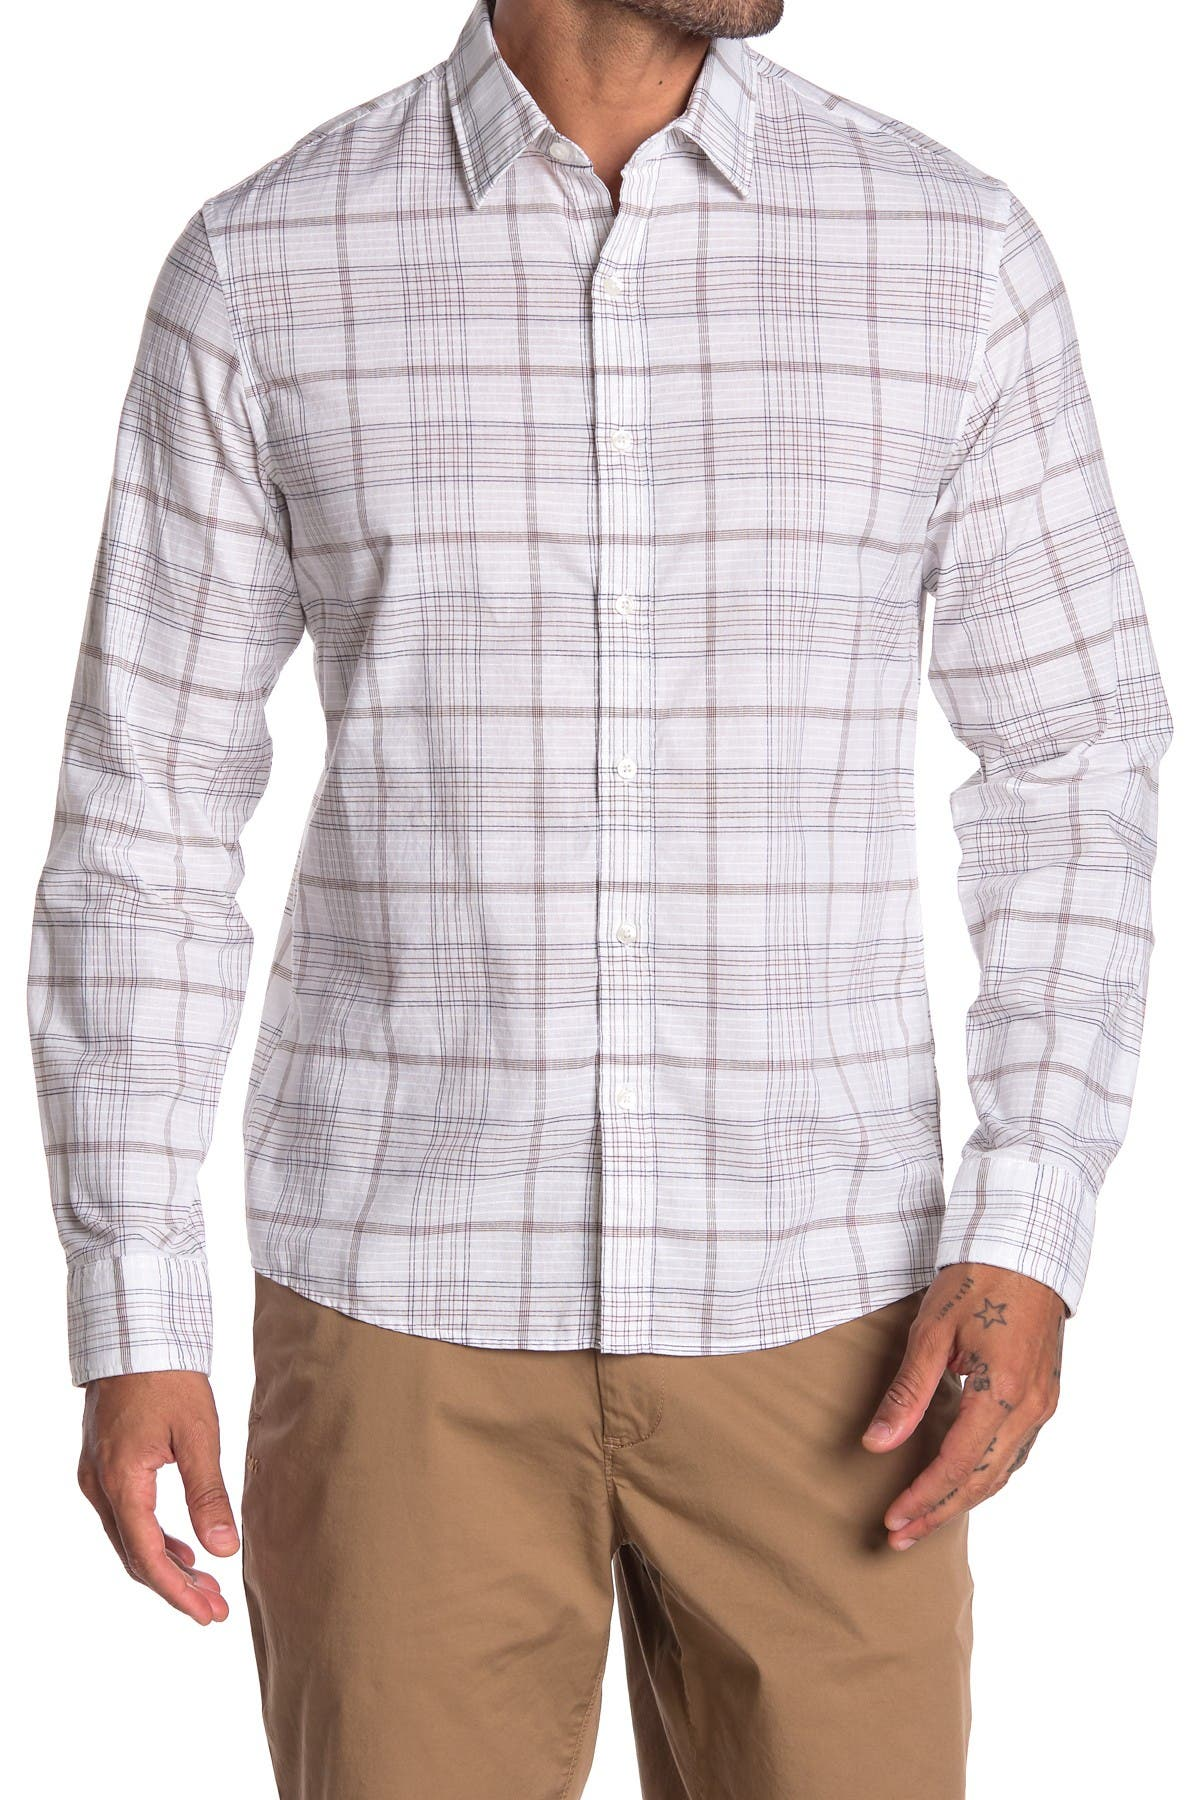 Image of Michael Kors Slim Fit Plaid Shirt